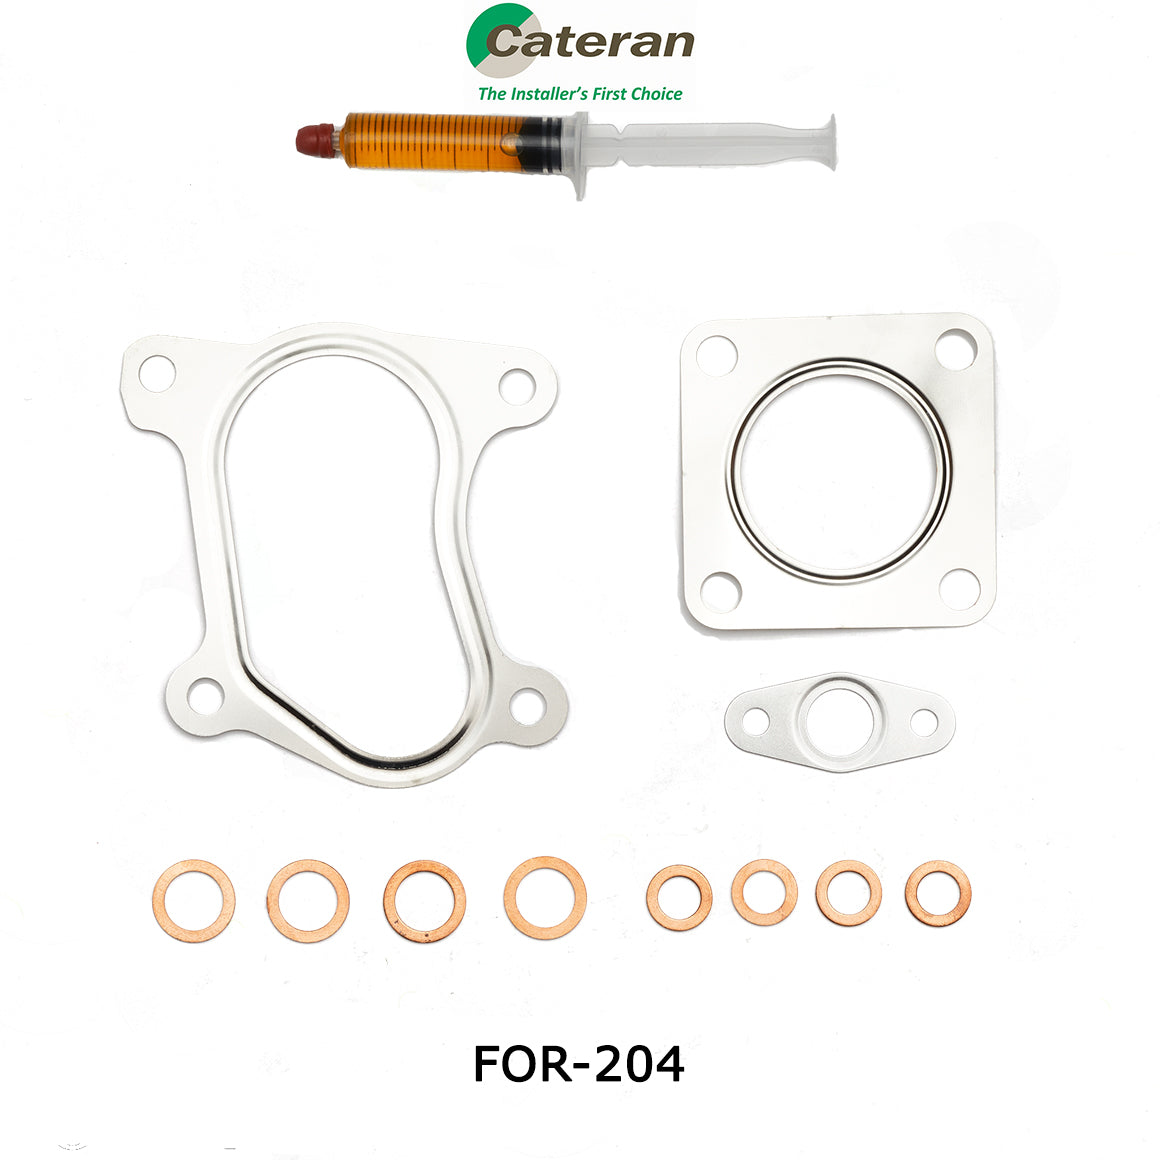 FORD COURIER 2.5L - 98/06 GASKET KIT